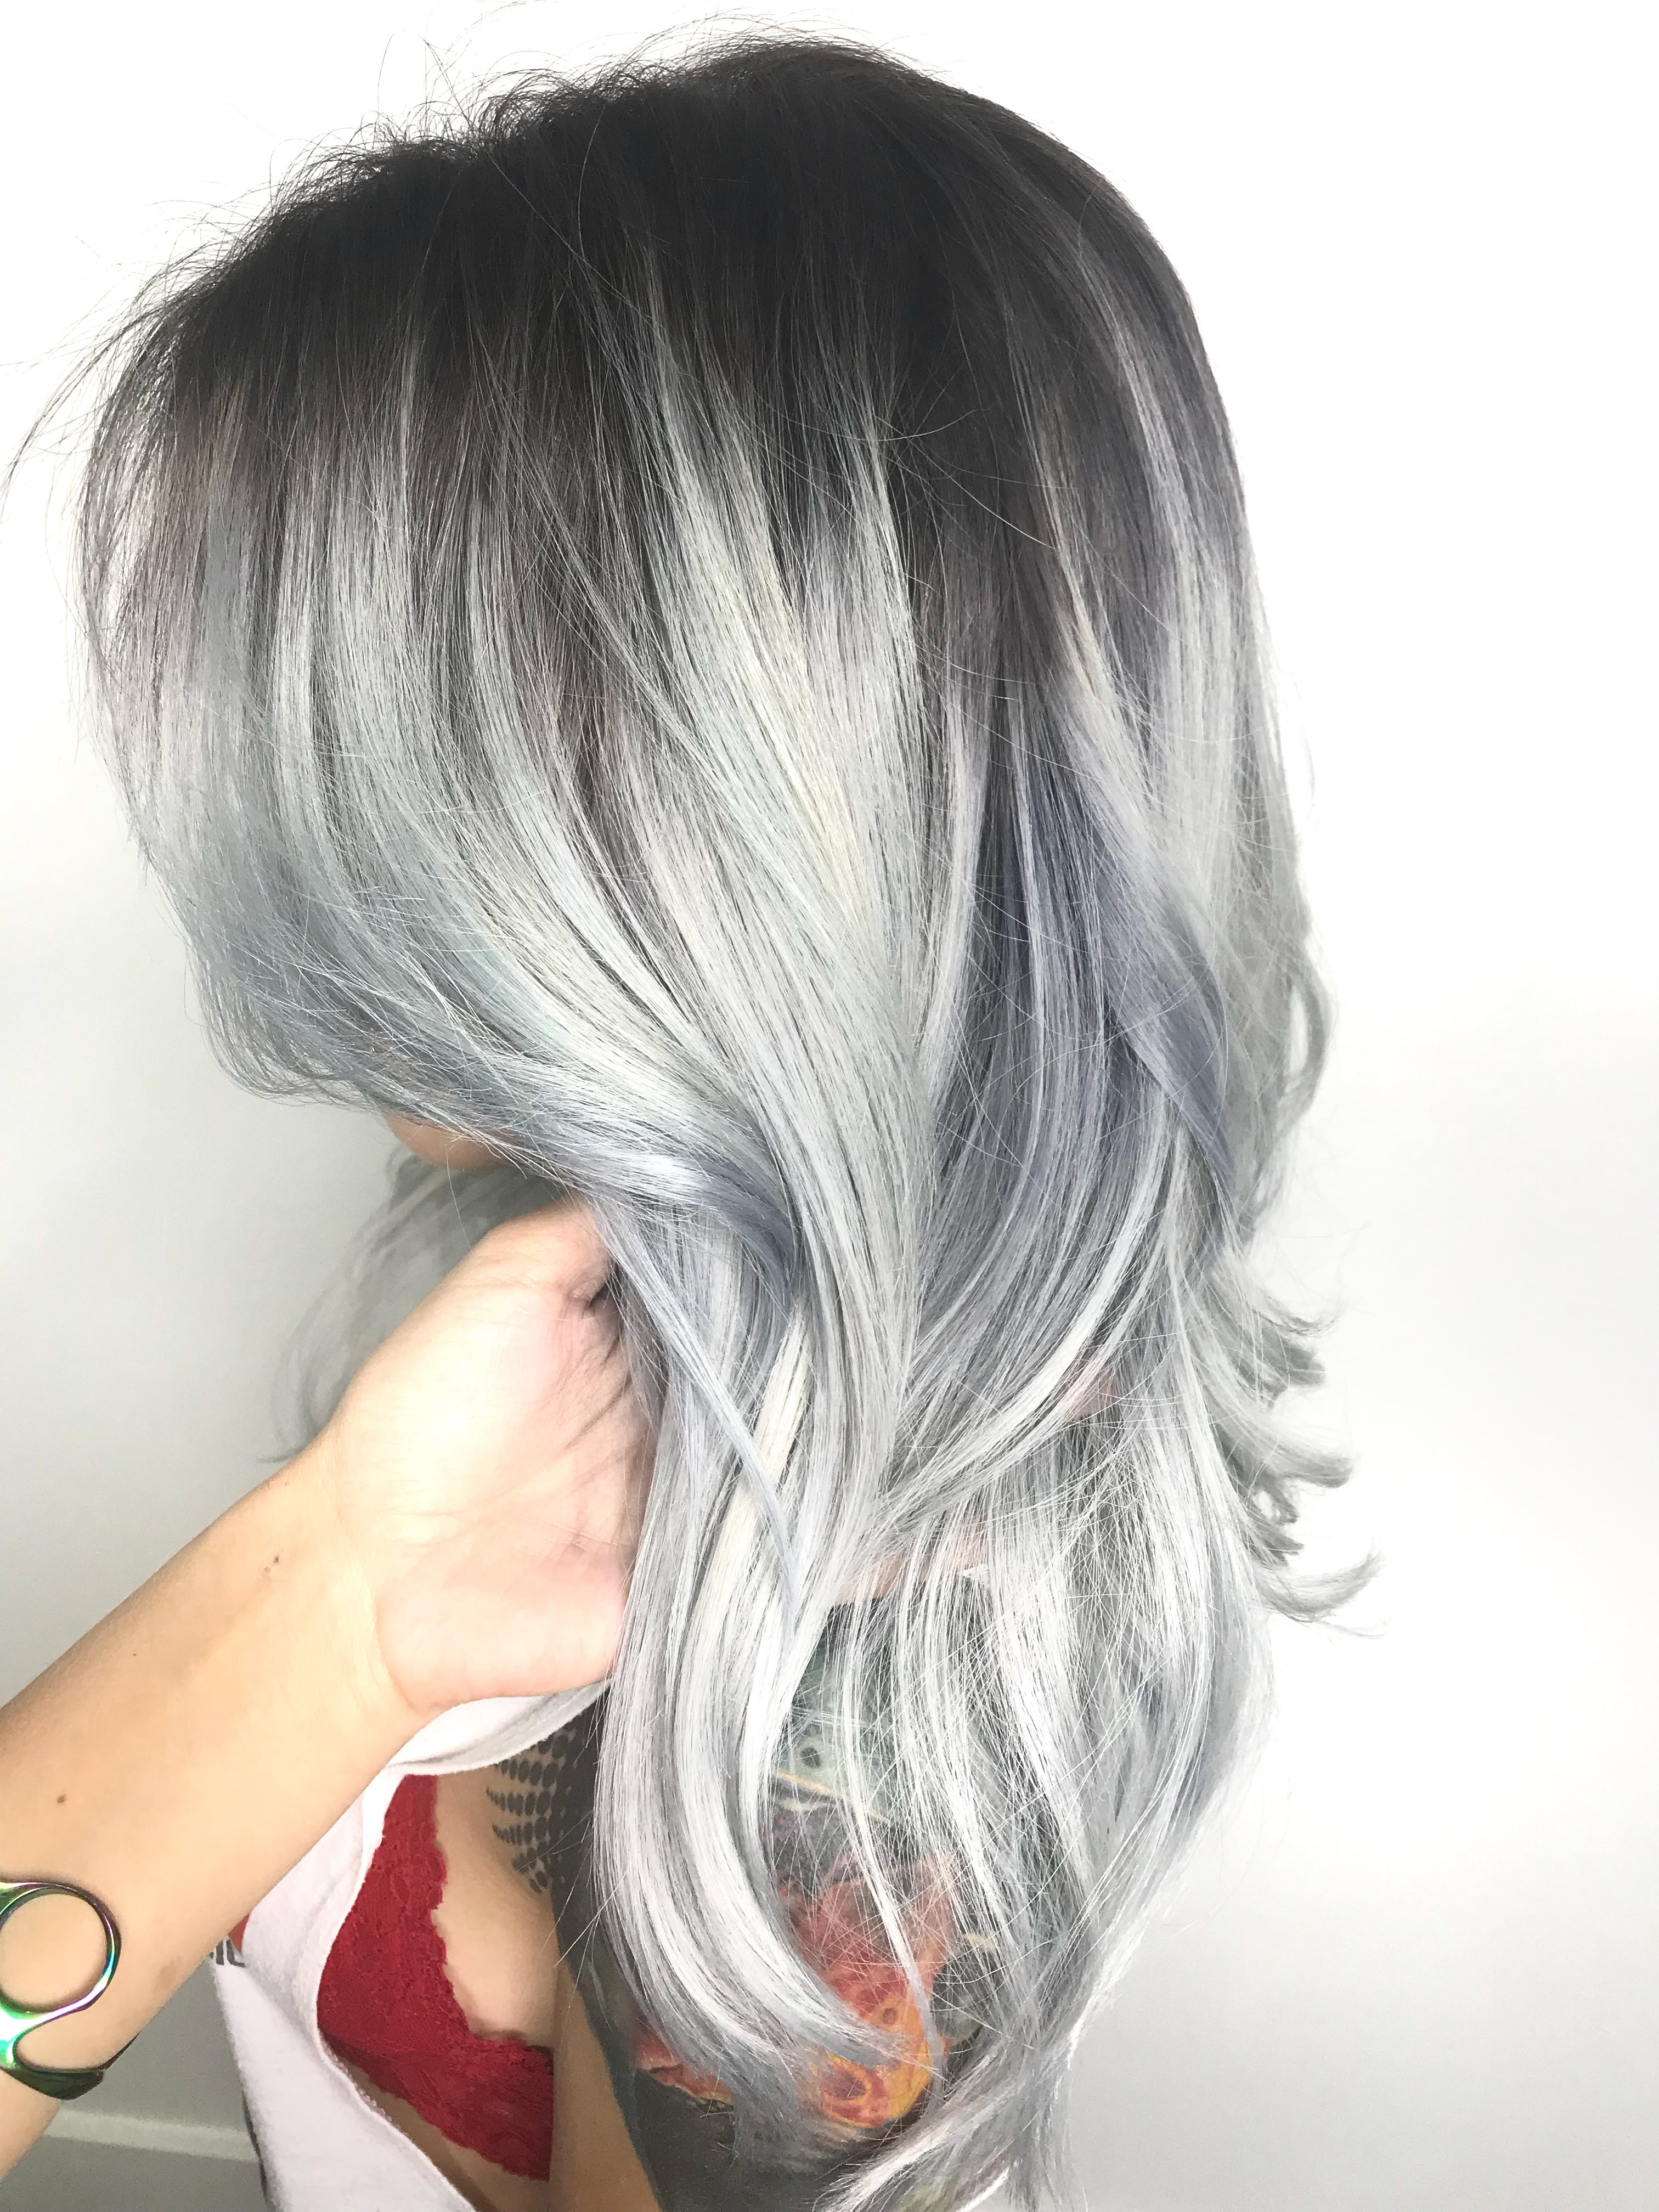 2-5MINUTE-WASH-SILVER-SILVERBLUE-PLATINUM-BRENDABSTYLES-1